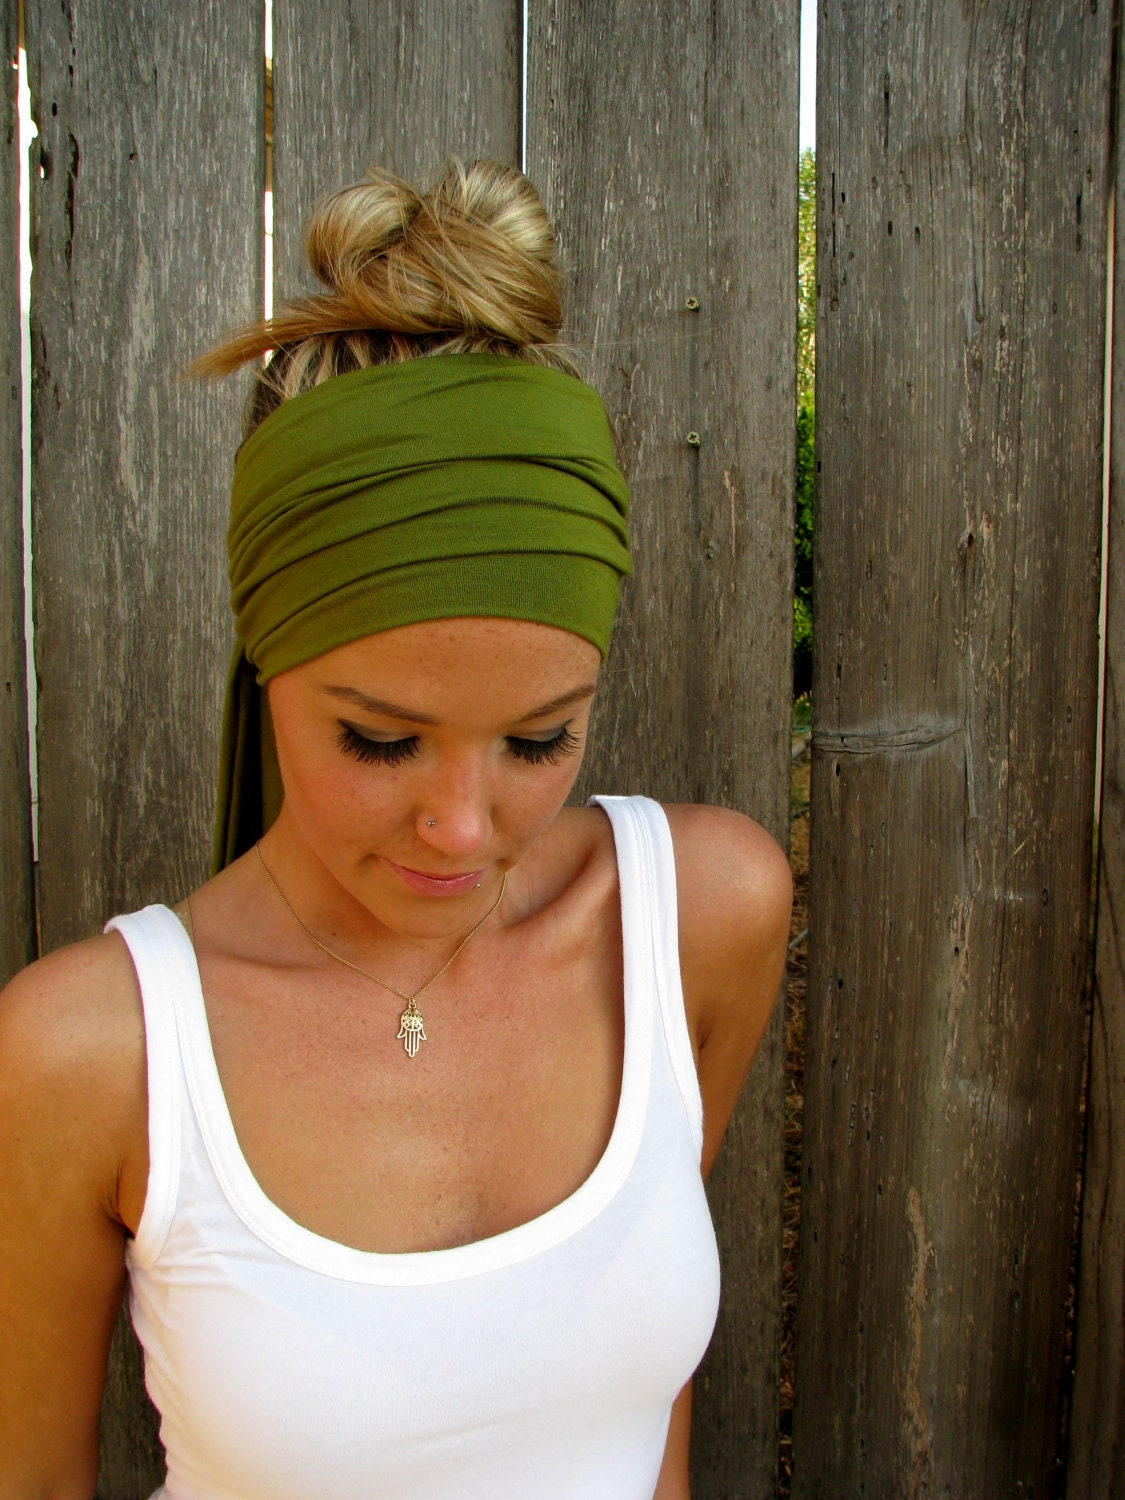 how to wear an infinity scarf on head